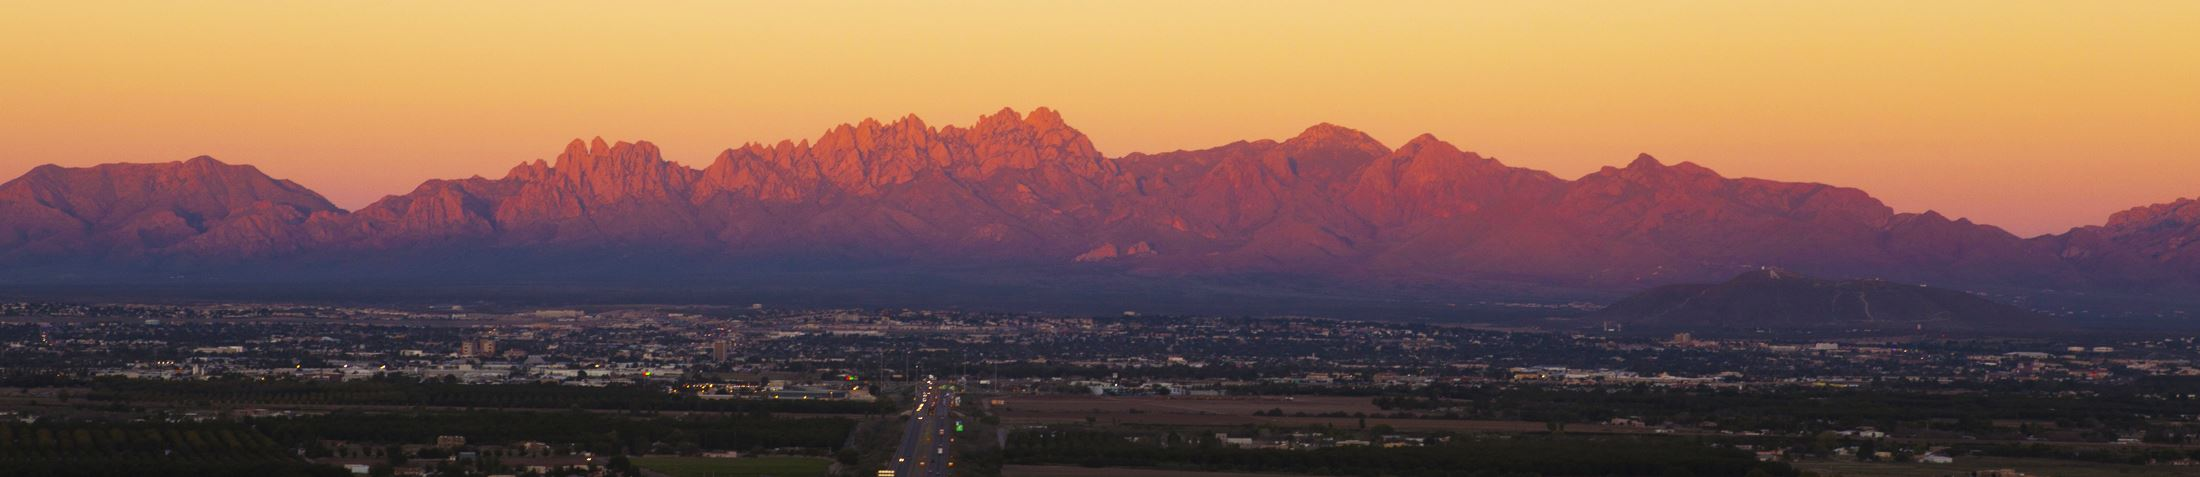 Image of Organ Mountains during Sunset